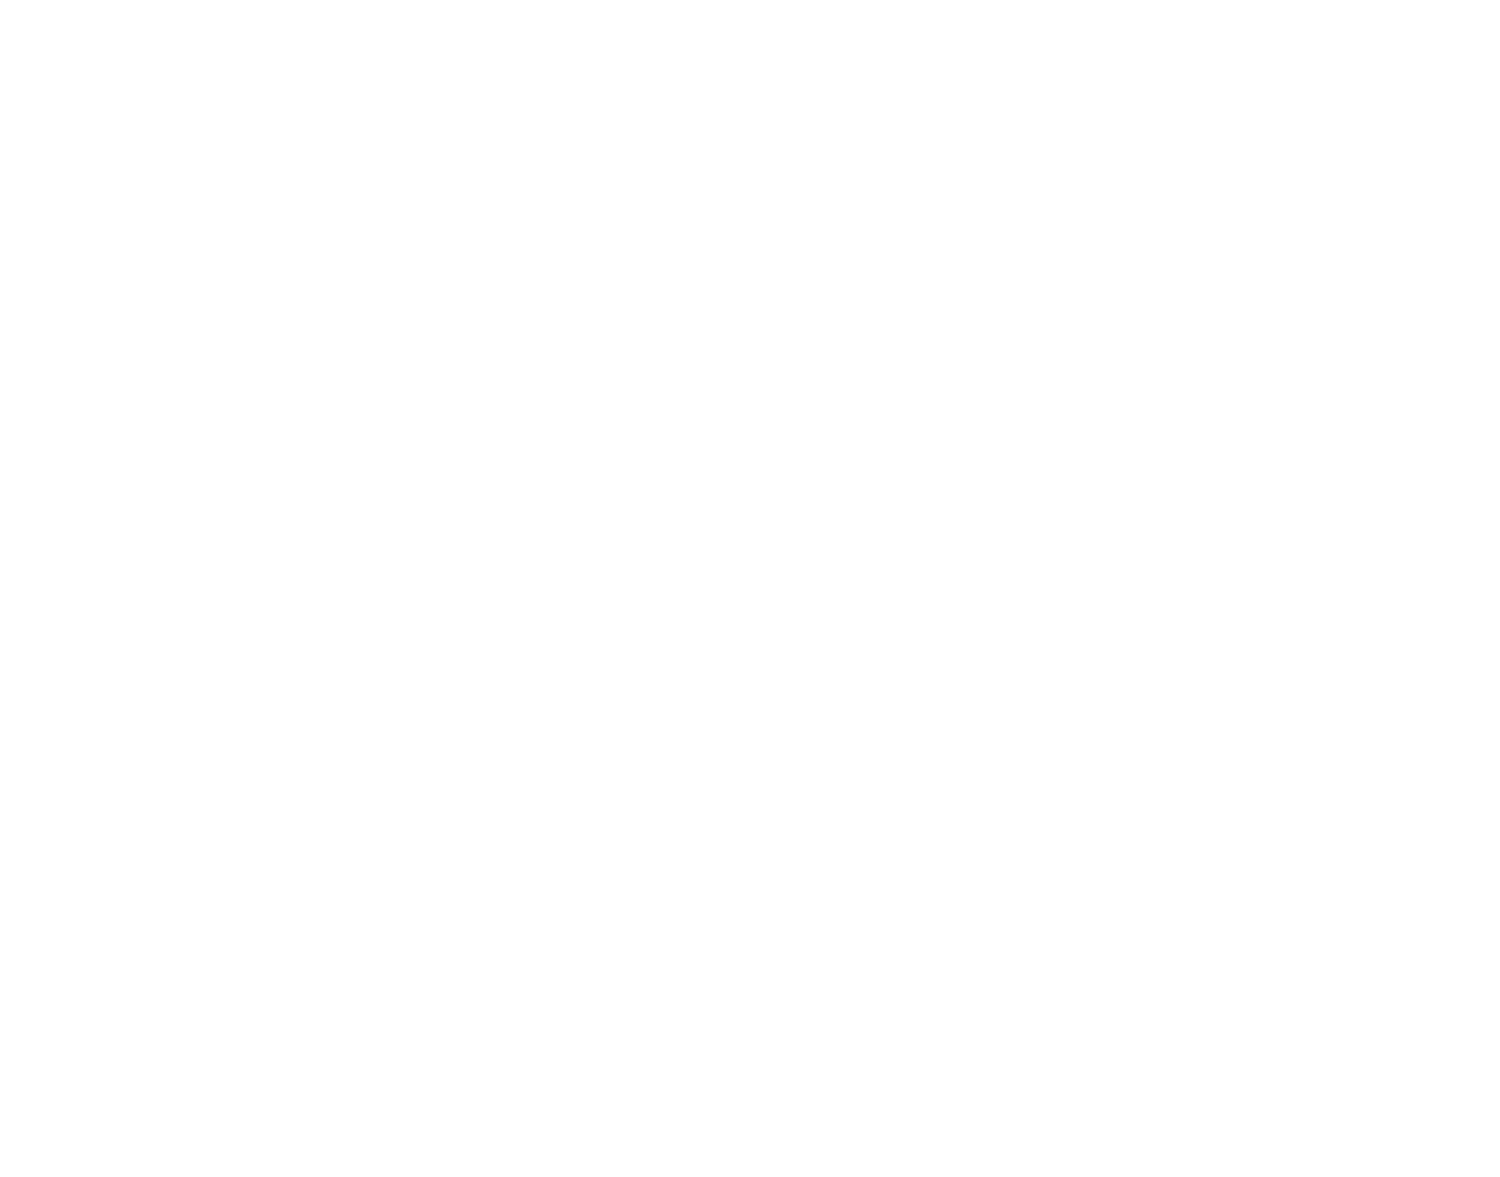 Roadrunner Fried Chicken